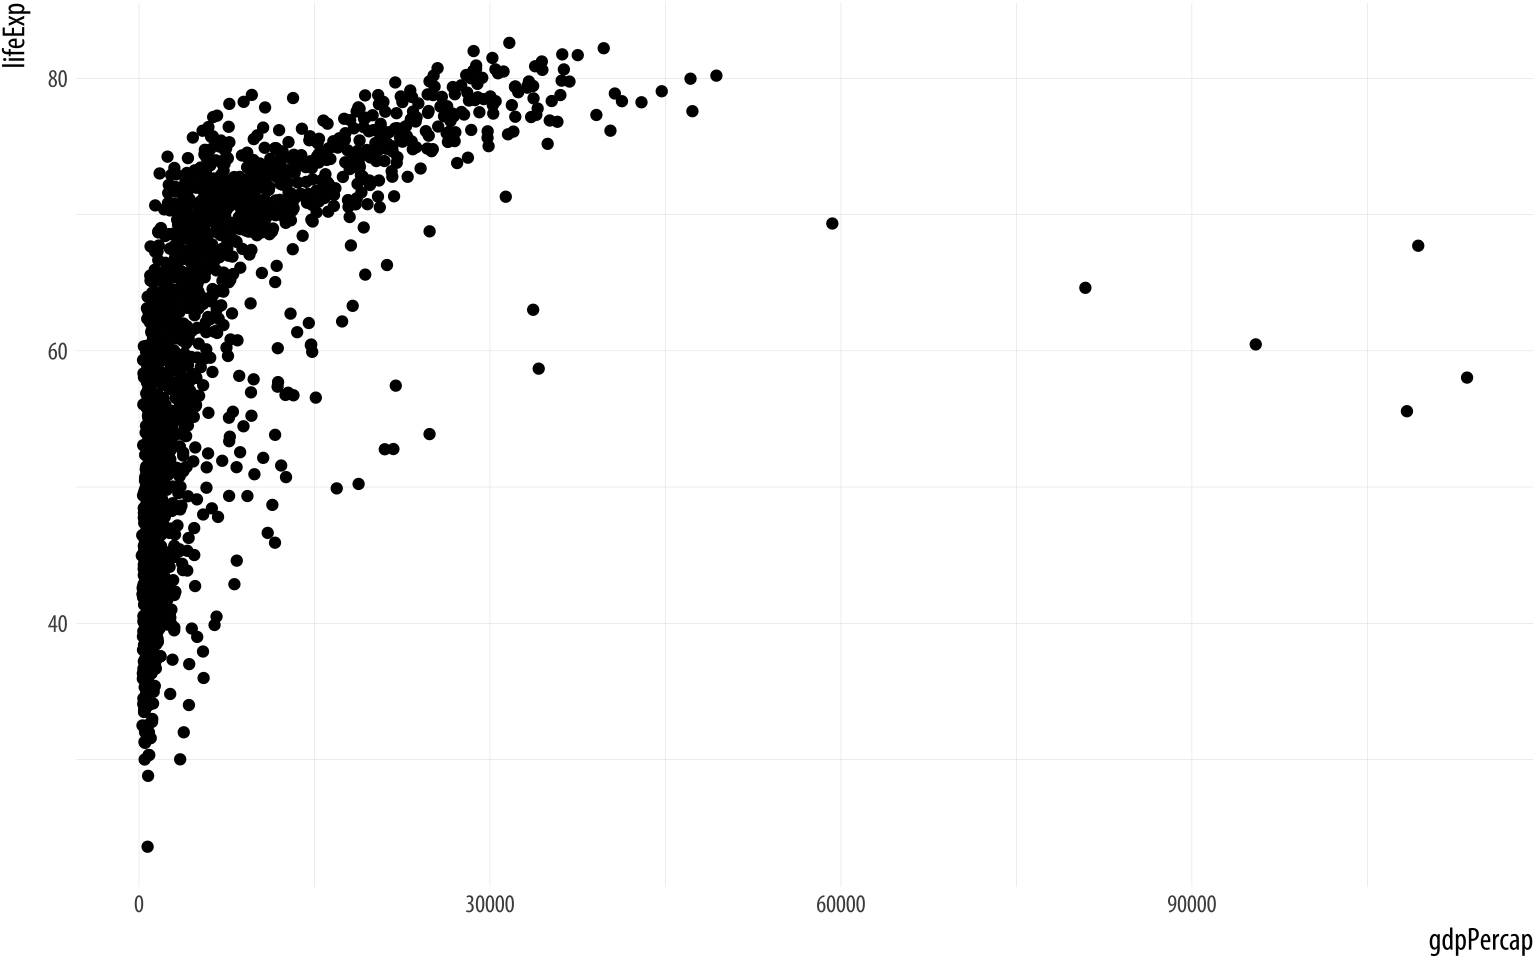 A scatterplot of Life Expectancy vs GDP